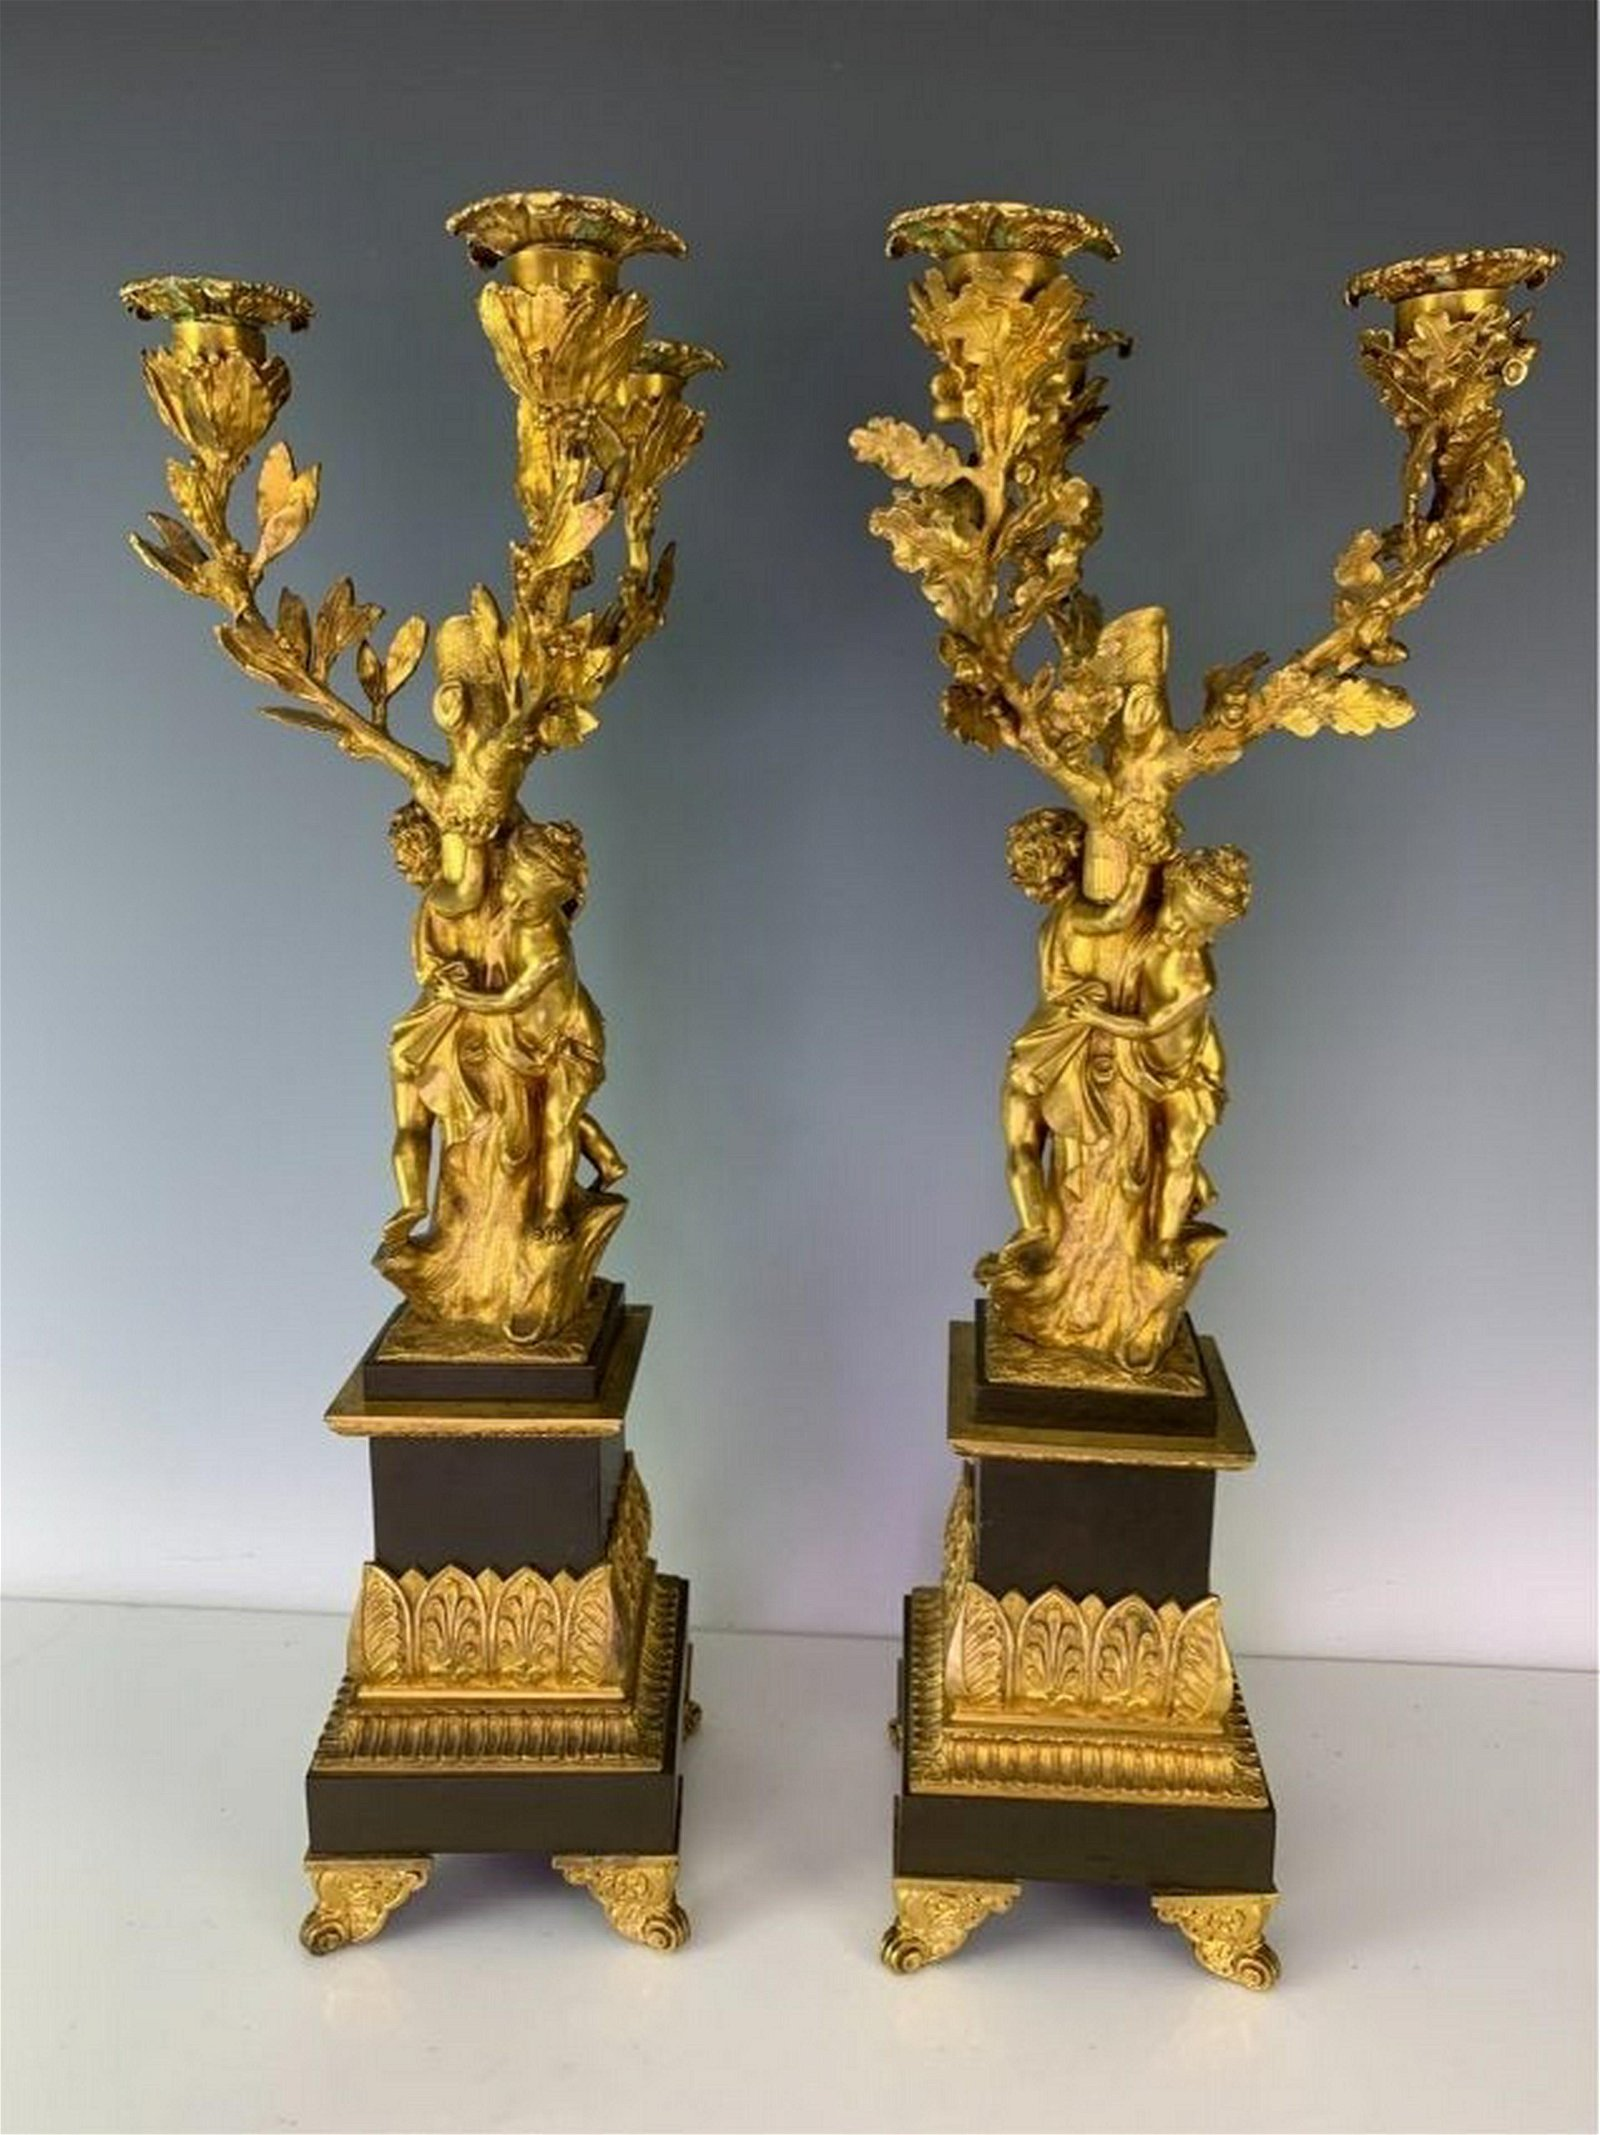 PAIR EMPIRE STYLE DORE AND PATINATED BRONZE CANDELABRA